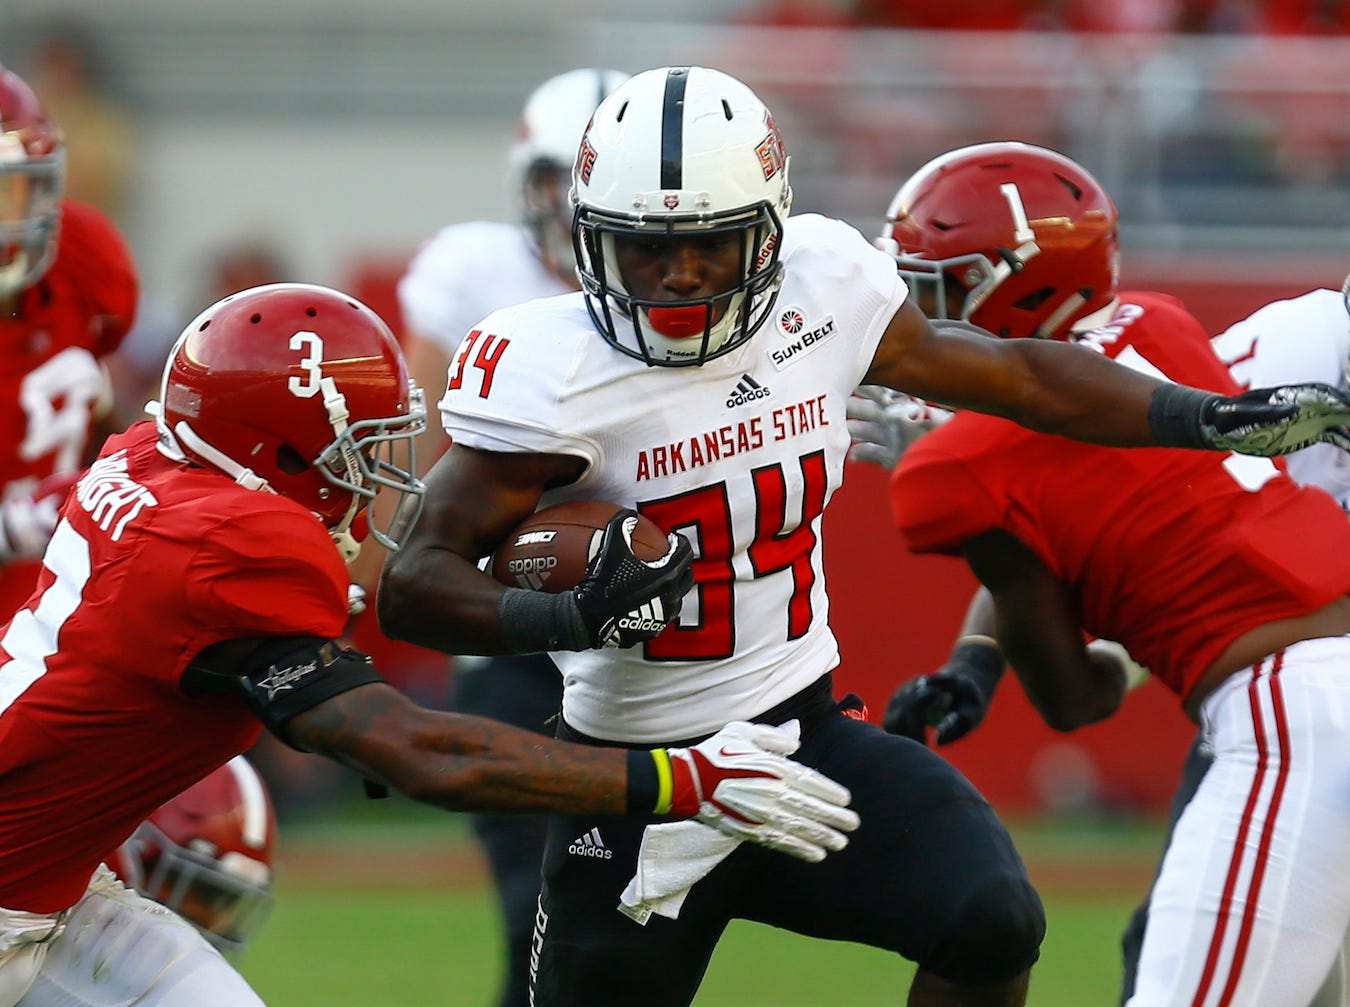 Meet Arkansas State, the 8-4 Arizona Bowl challenge for the Wolf Pack